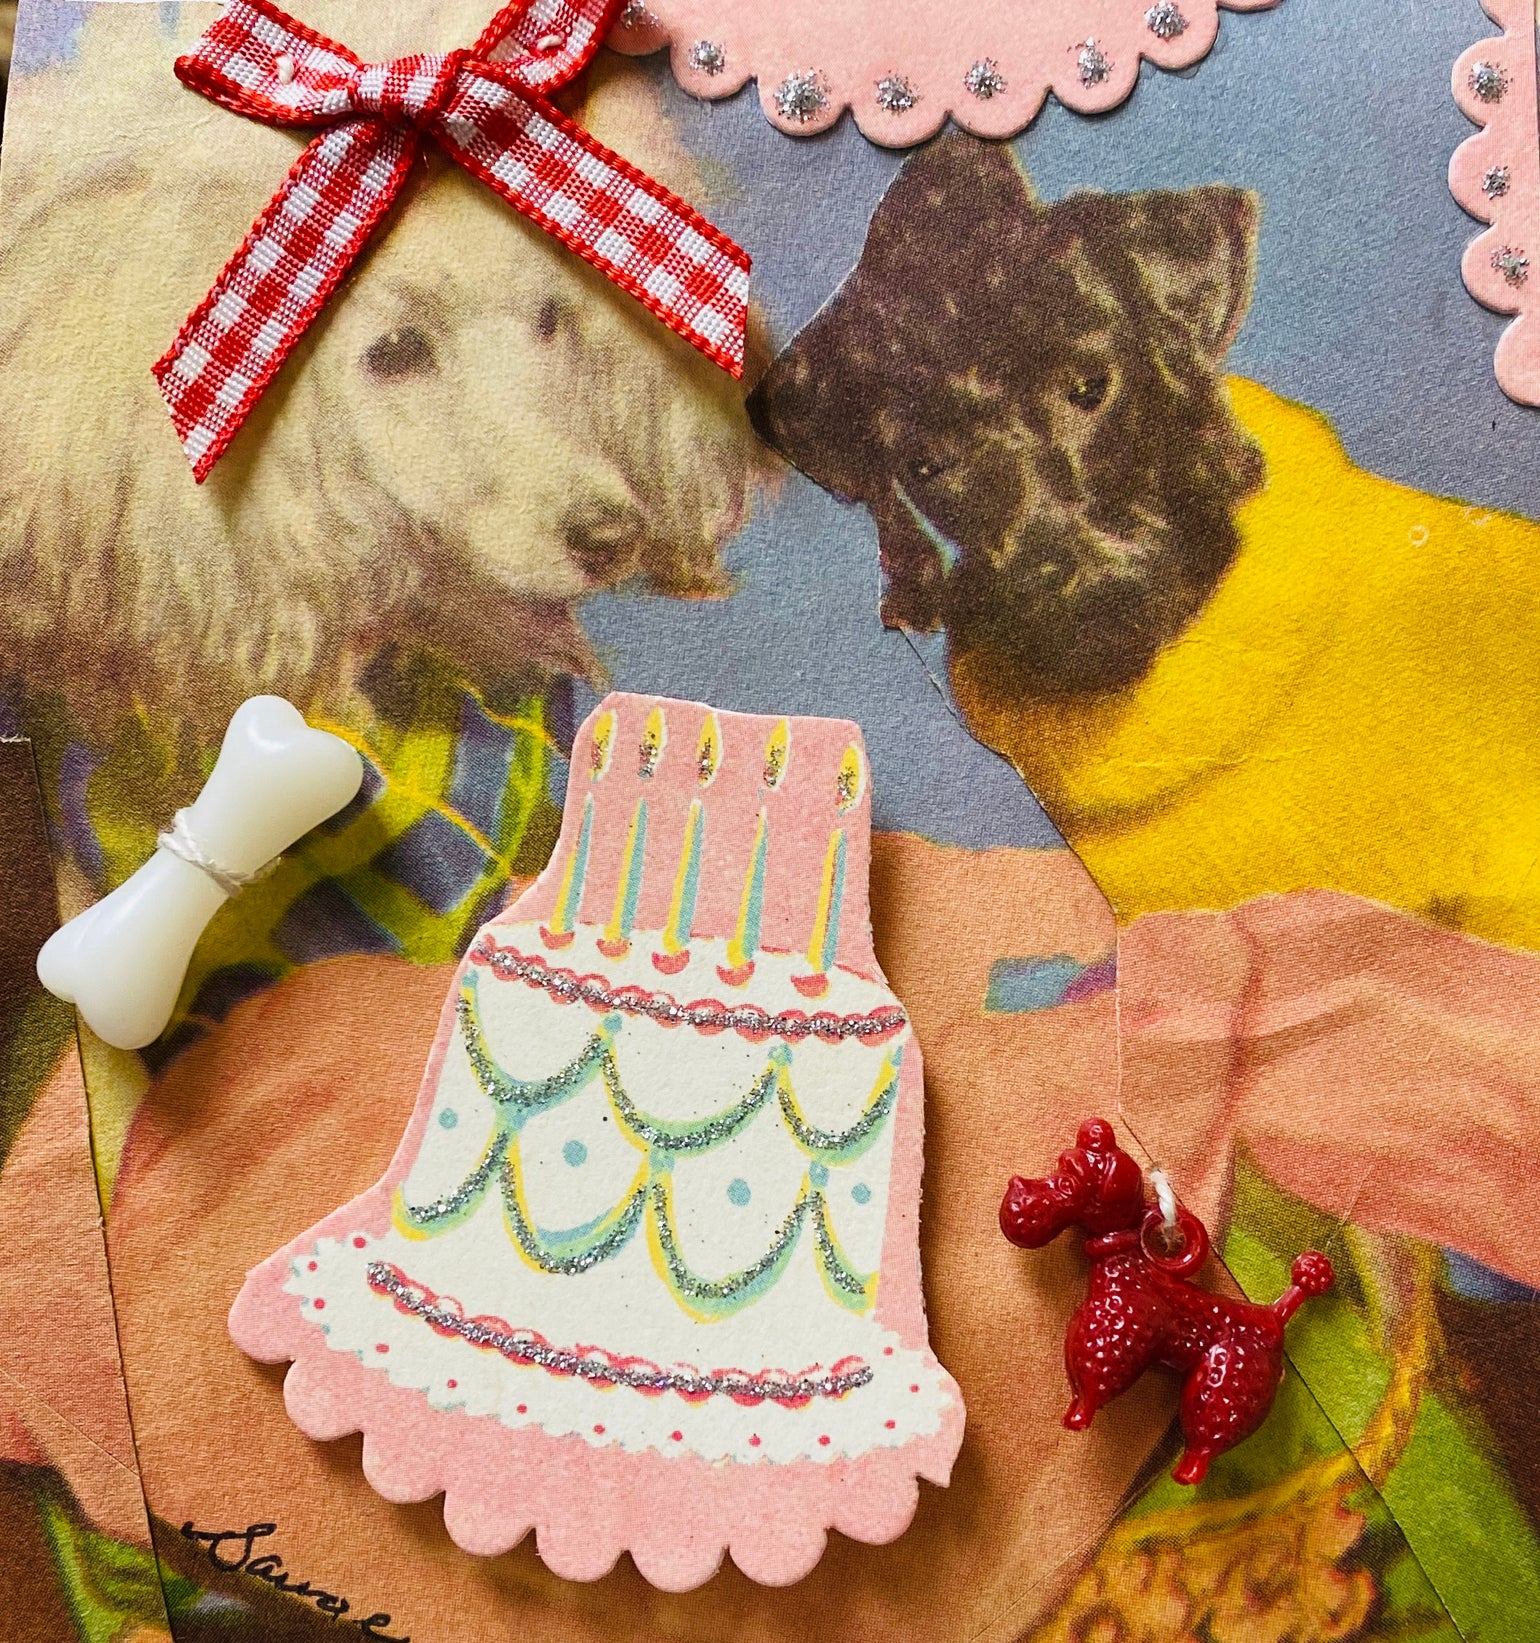 Image of poodle birthday